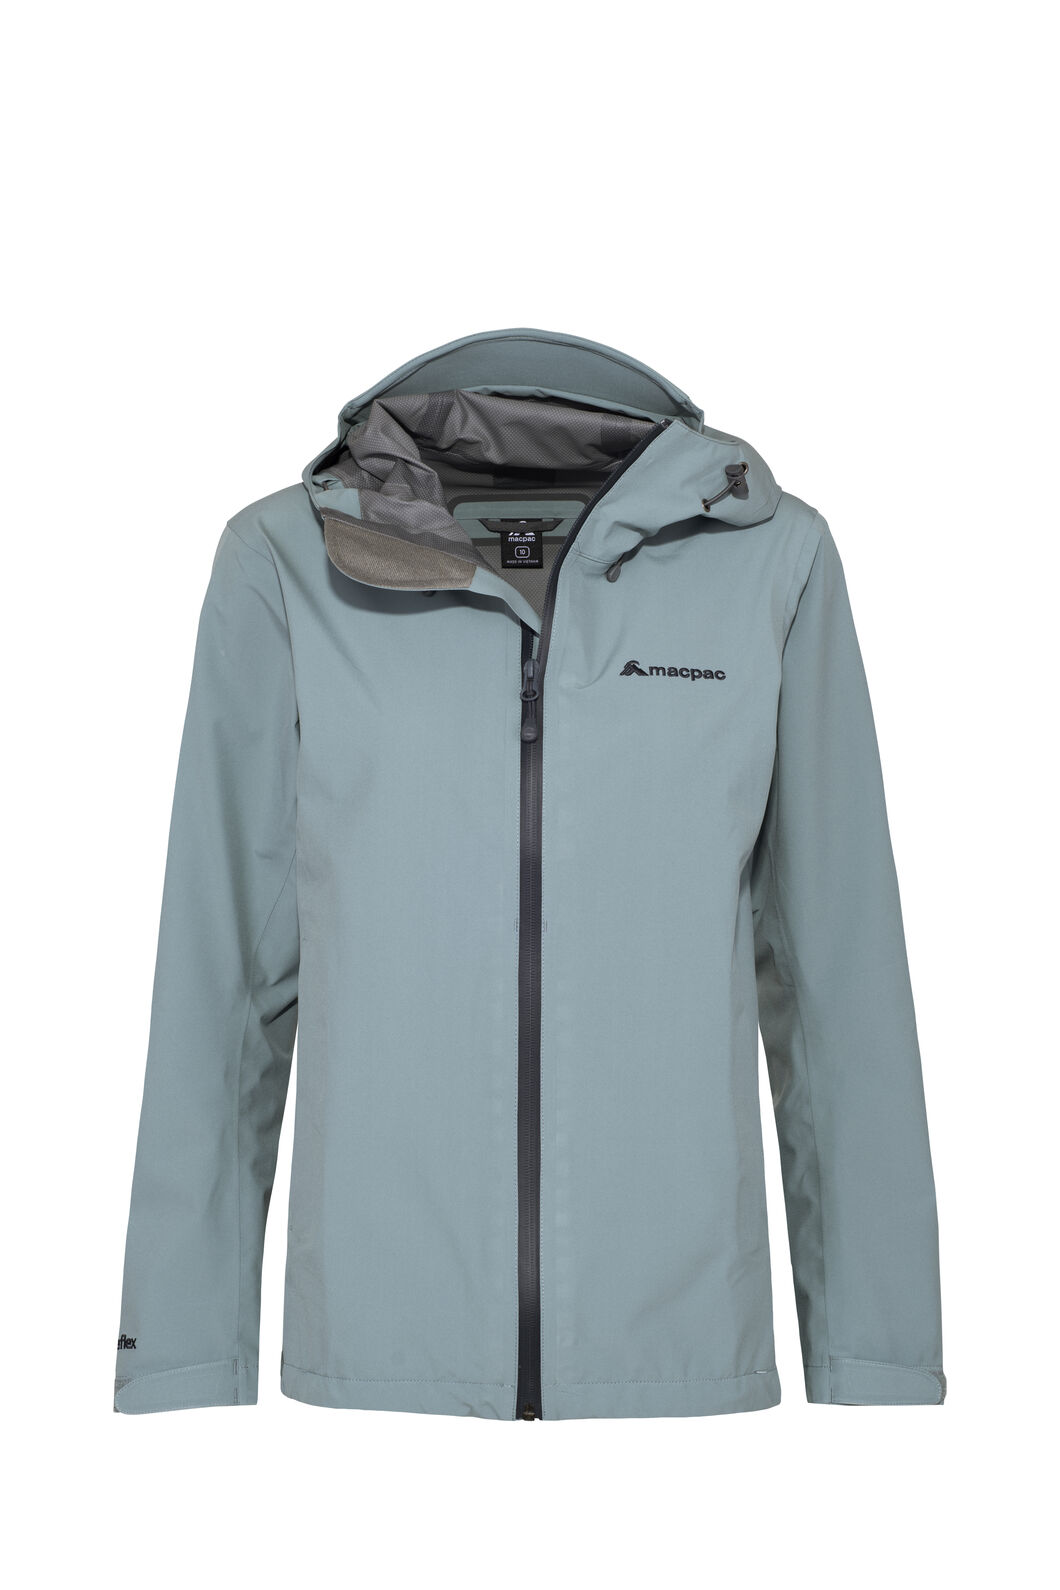 Macpac Dispatch Rain Jacket - Women's, Stormy Sea, hi-res